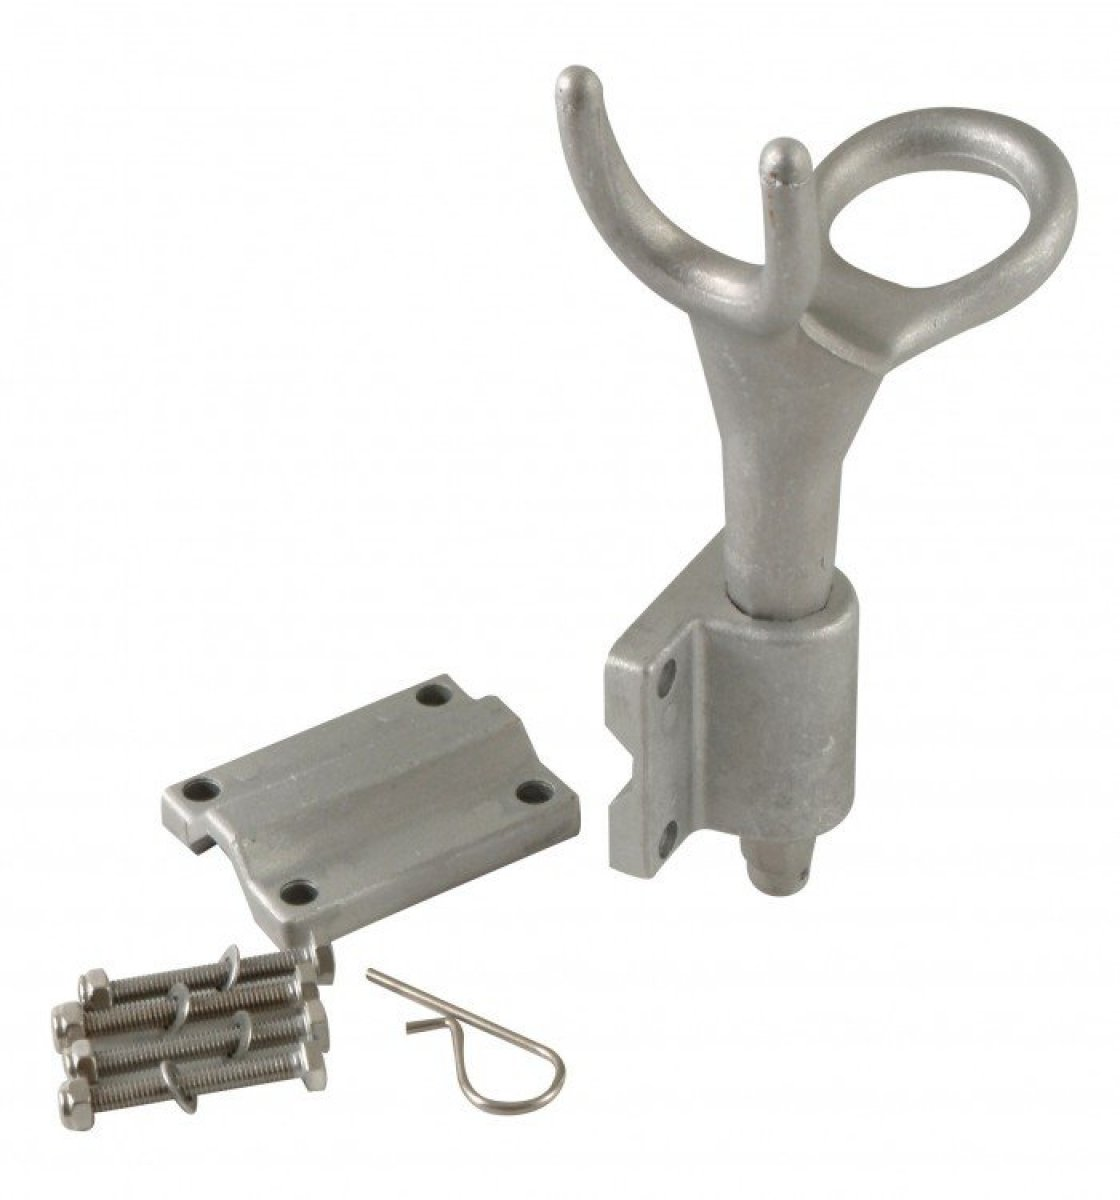 ALLOY HEAVY DUTY ROD HOLDER - WITH MOUNT - ONLY $ 19.00